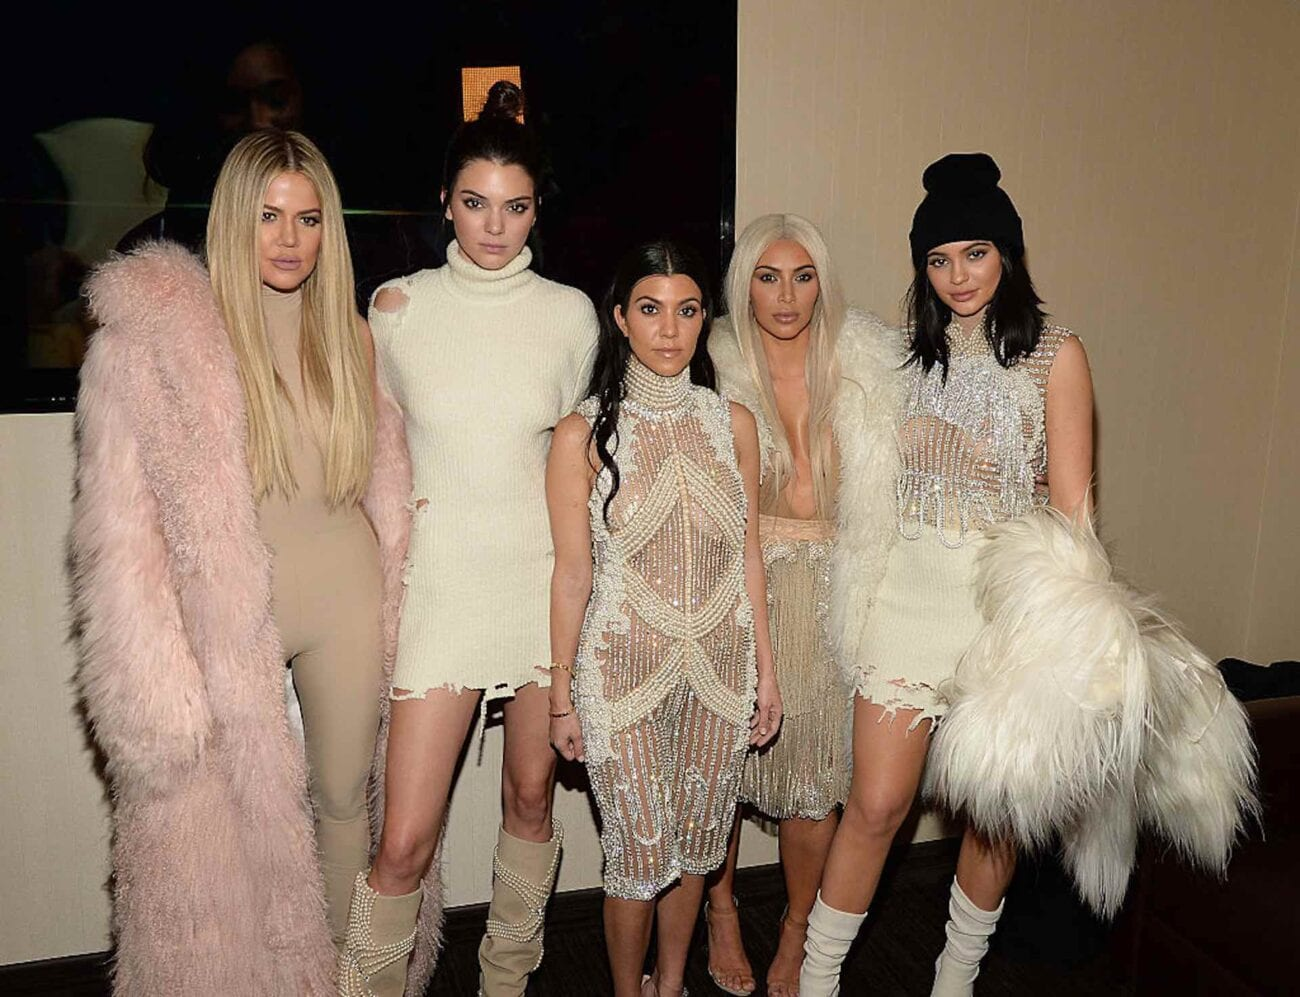 The Kardashian family has dominated the sphere of celebrity and fame for decades now. Here's a look at some of their most notable disputes.